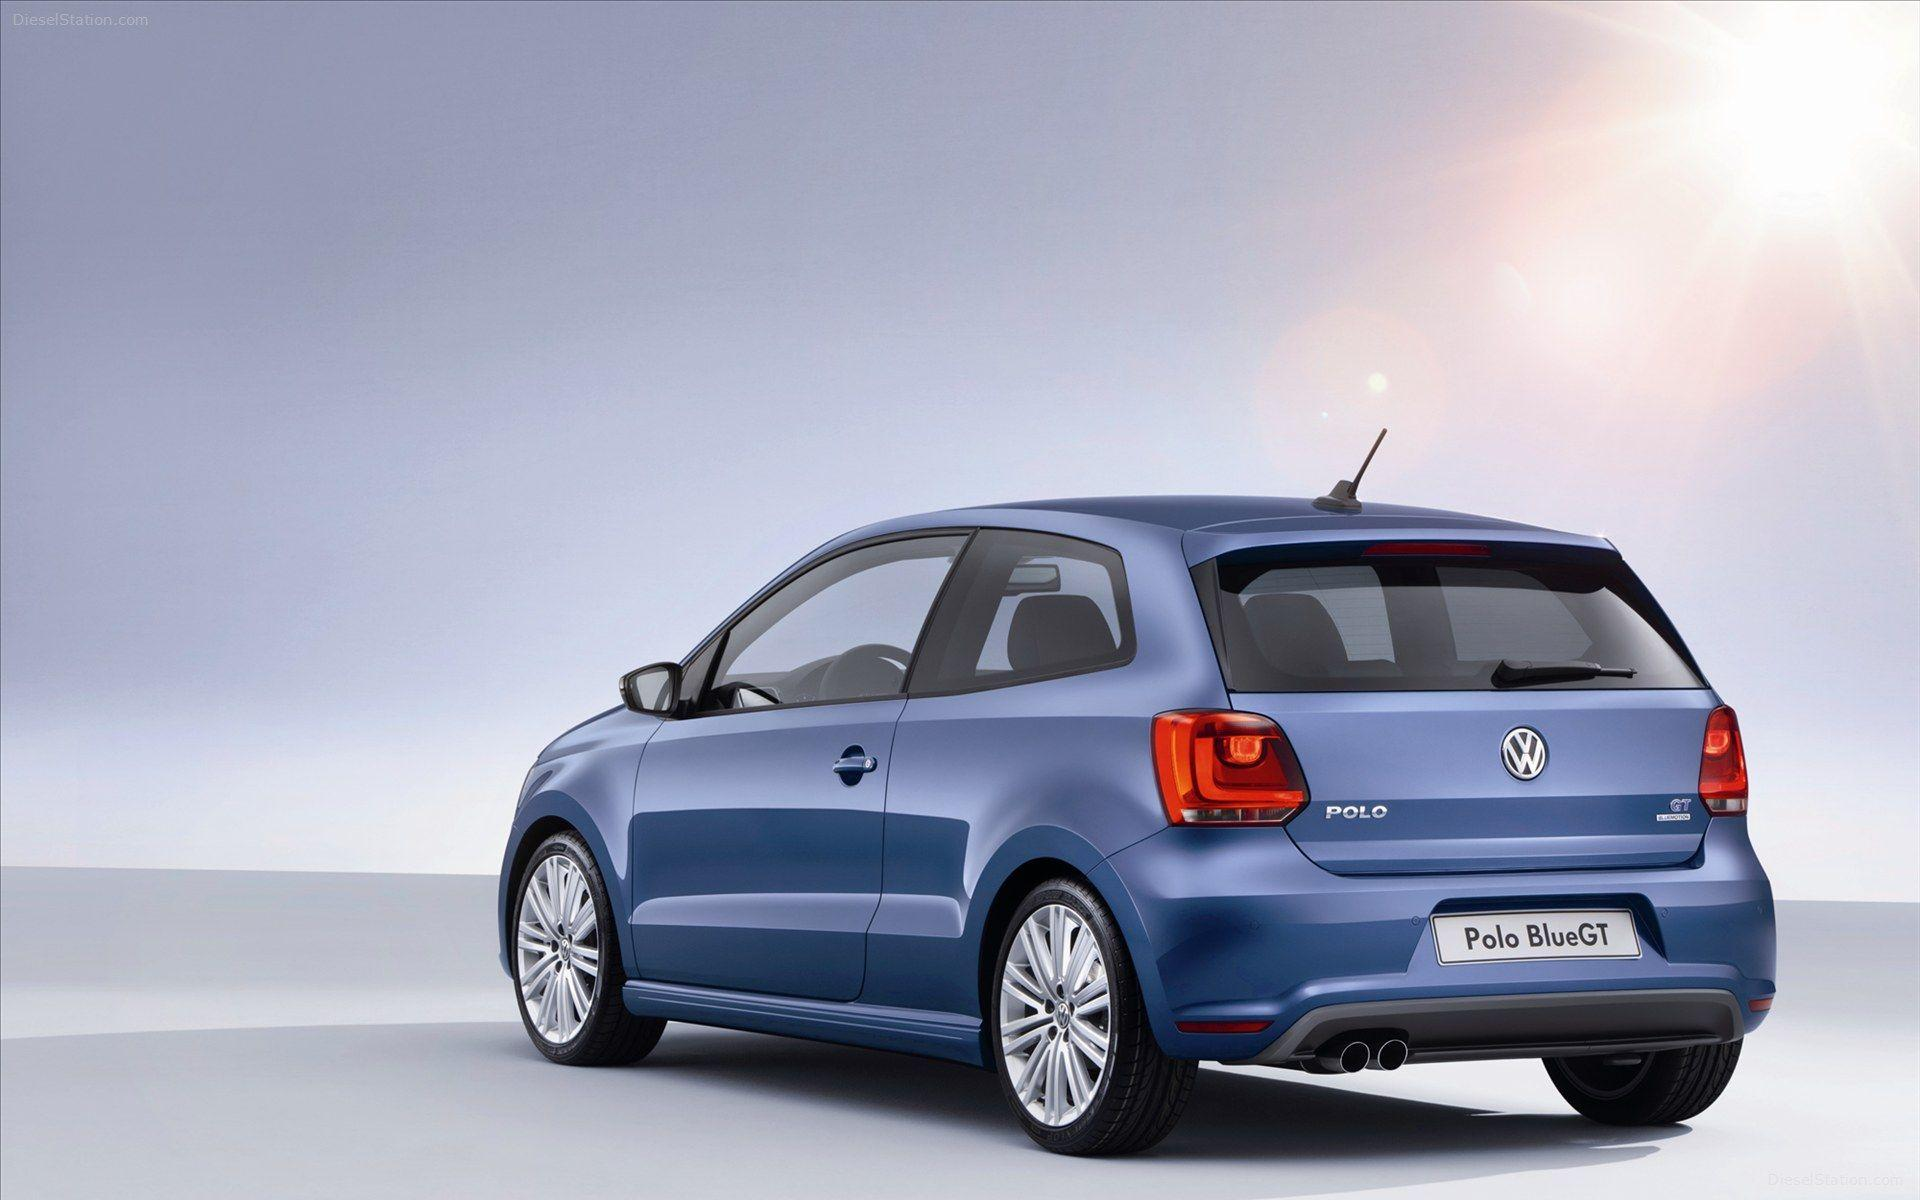 Volkswagen Polo Blue GT 2013 Widescreen Exotic Car Wallpaper #03 of ...